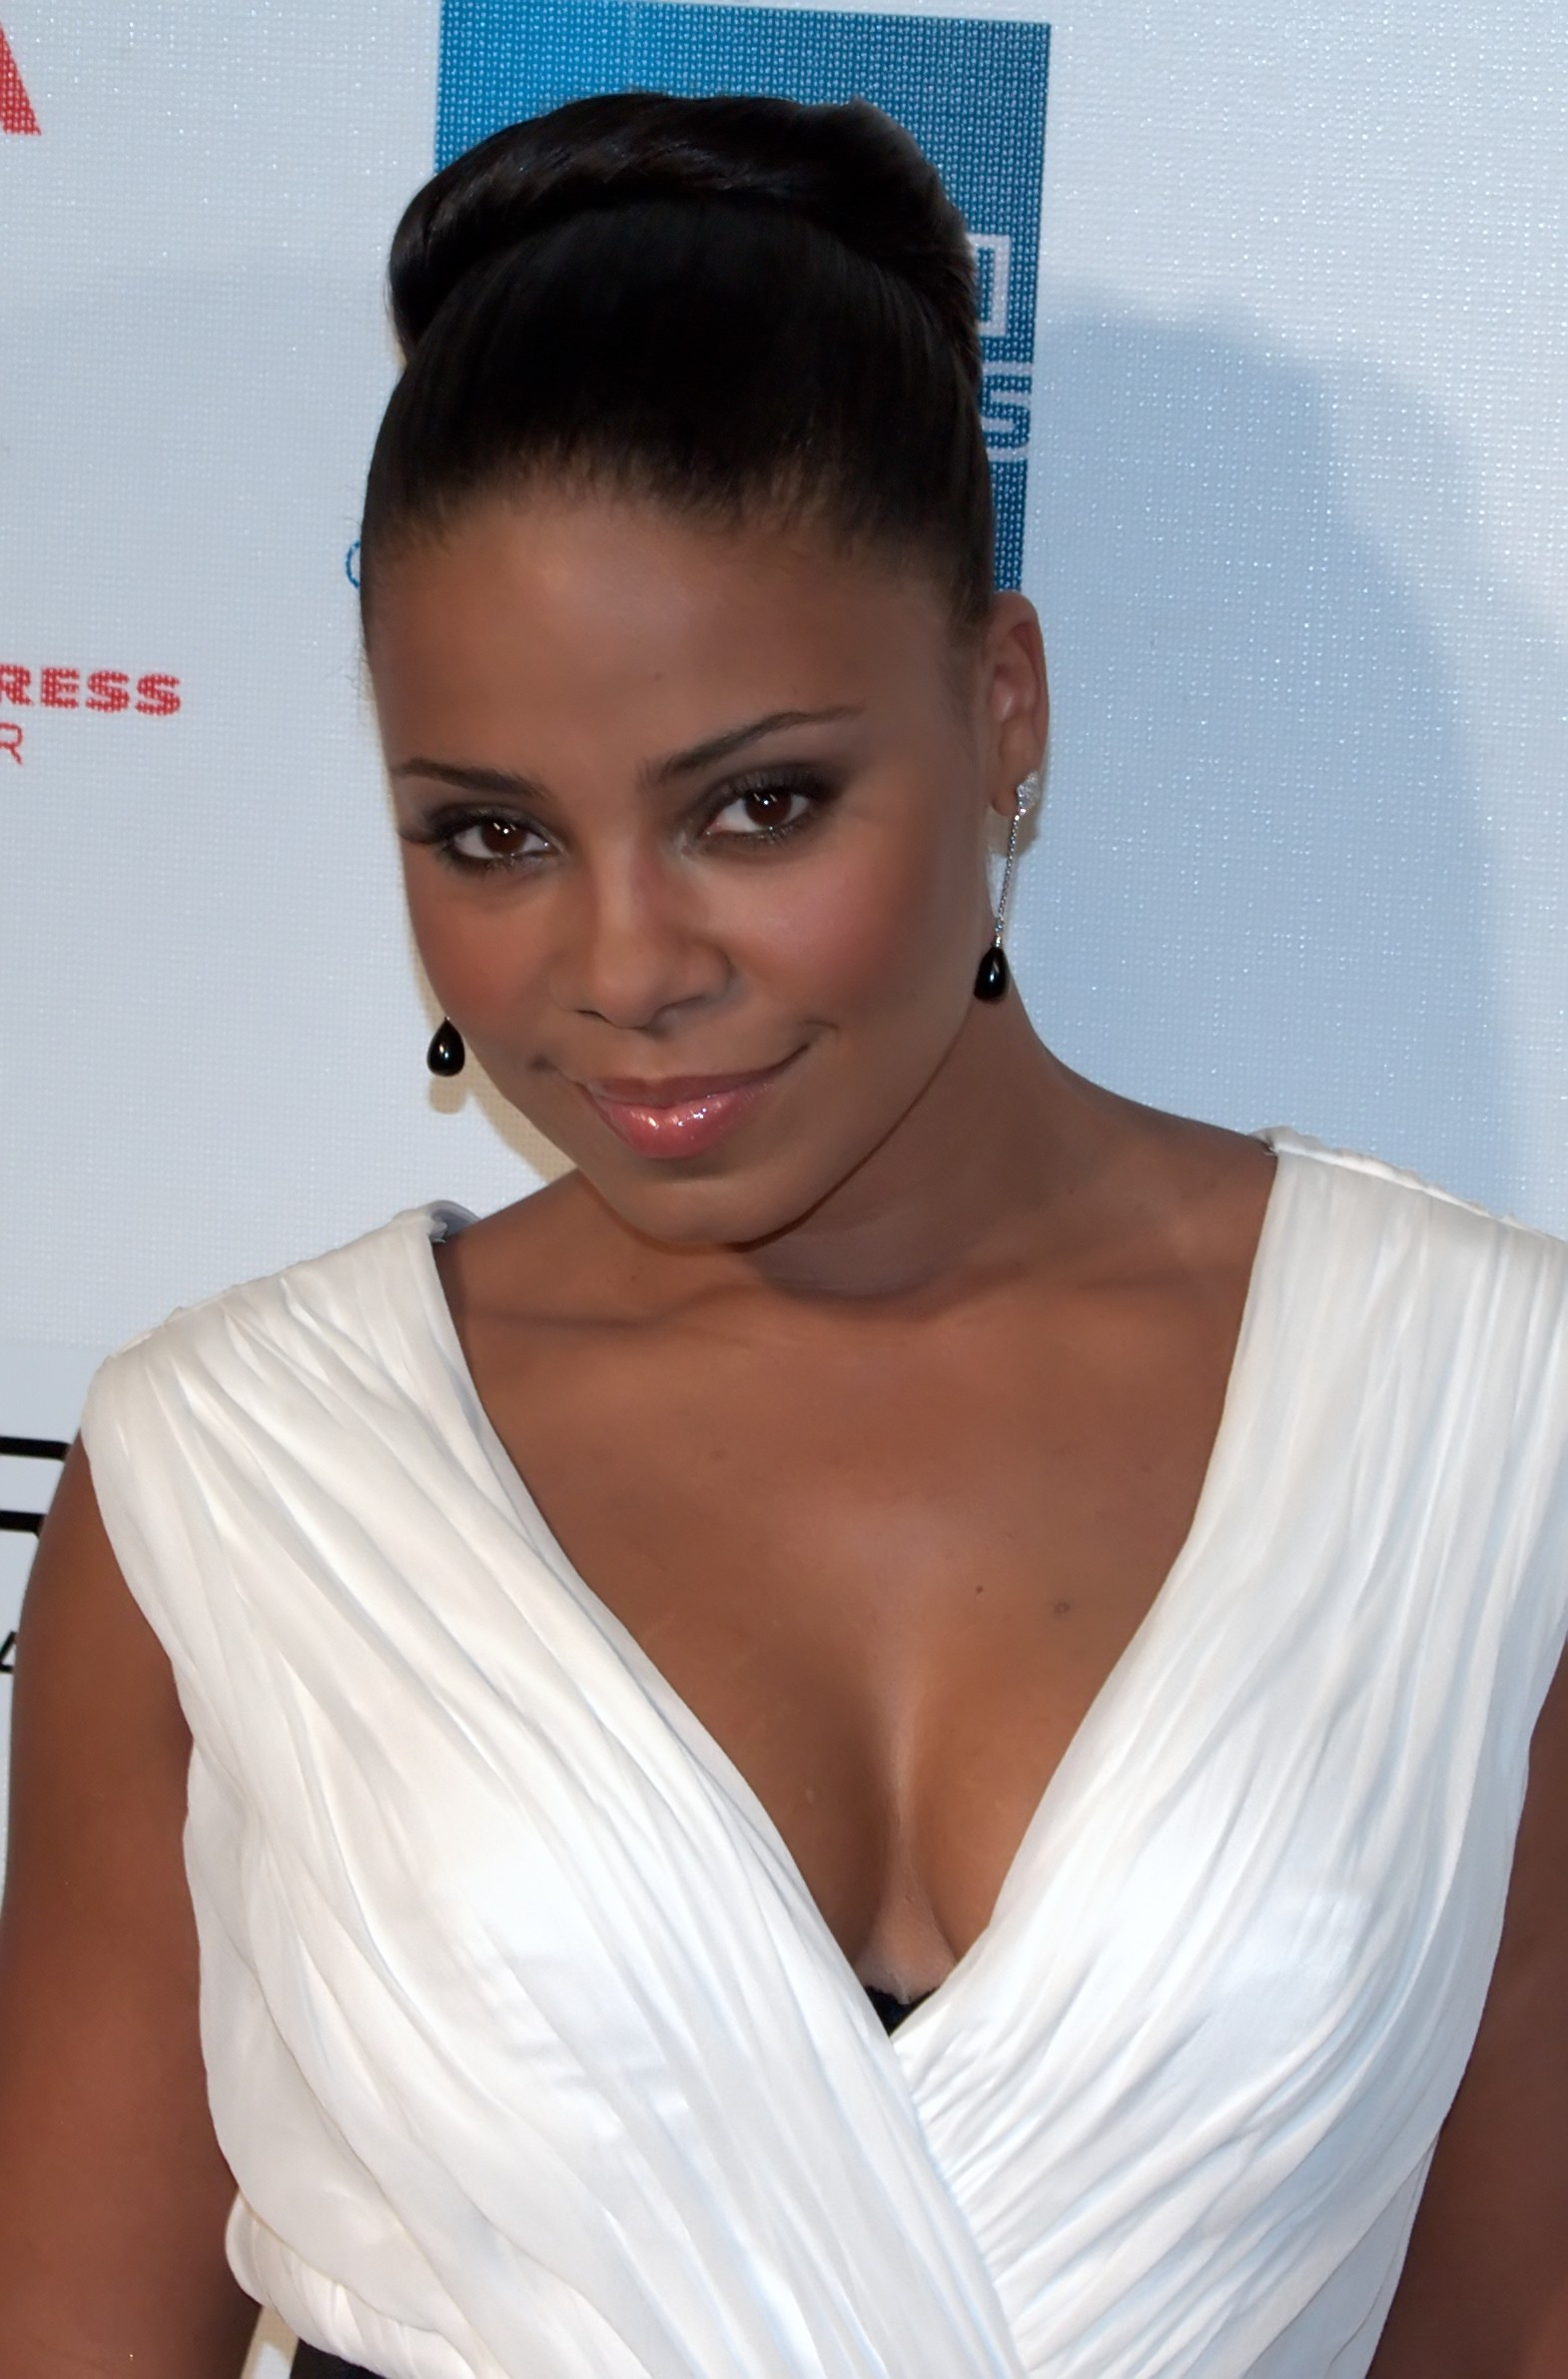 Beautiful Girl Hd Wallpapers 1080p Download Sanaa Lathan Wallpapers High Quality Download Free